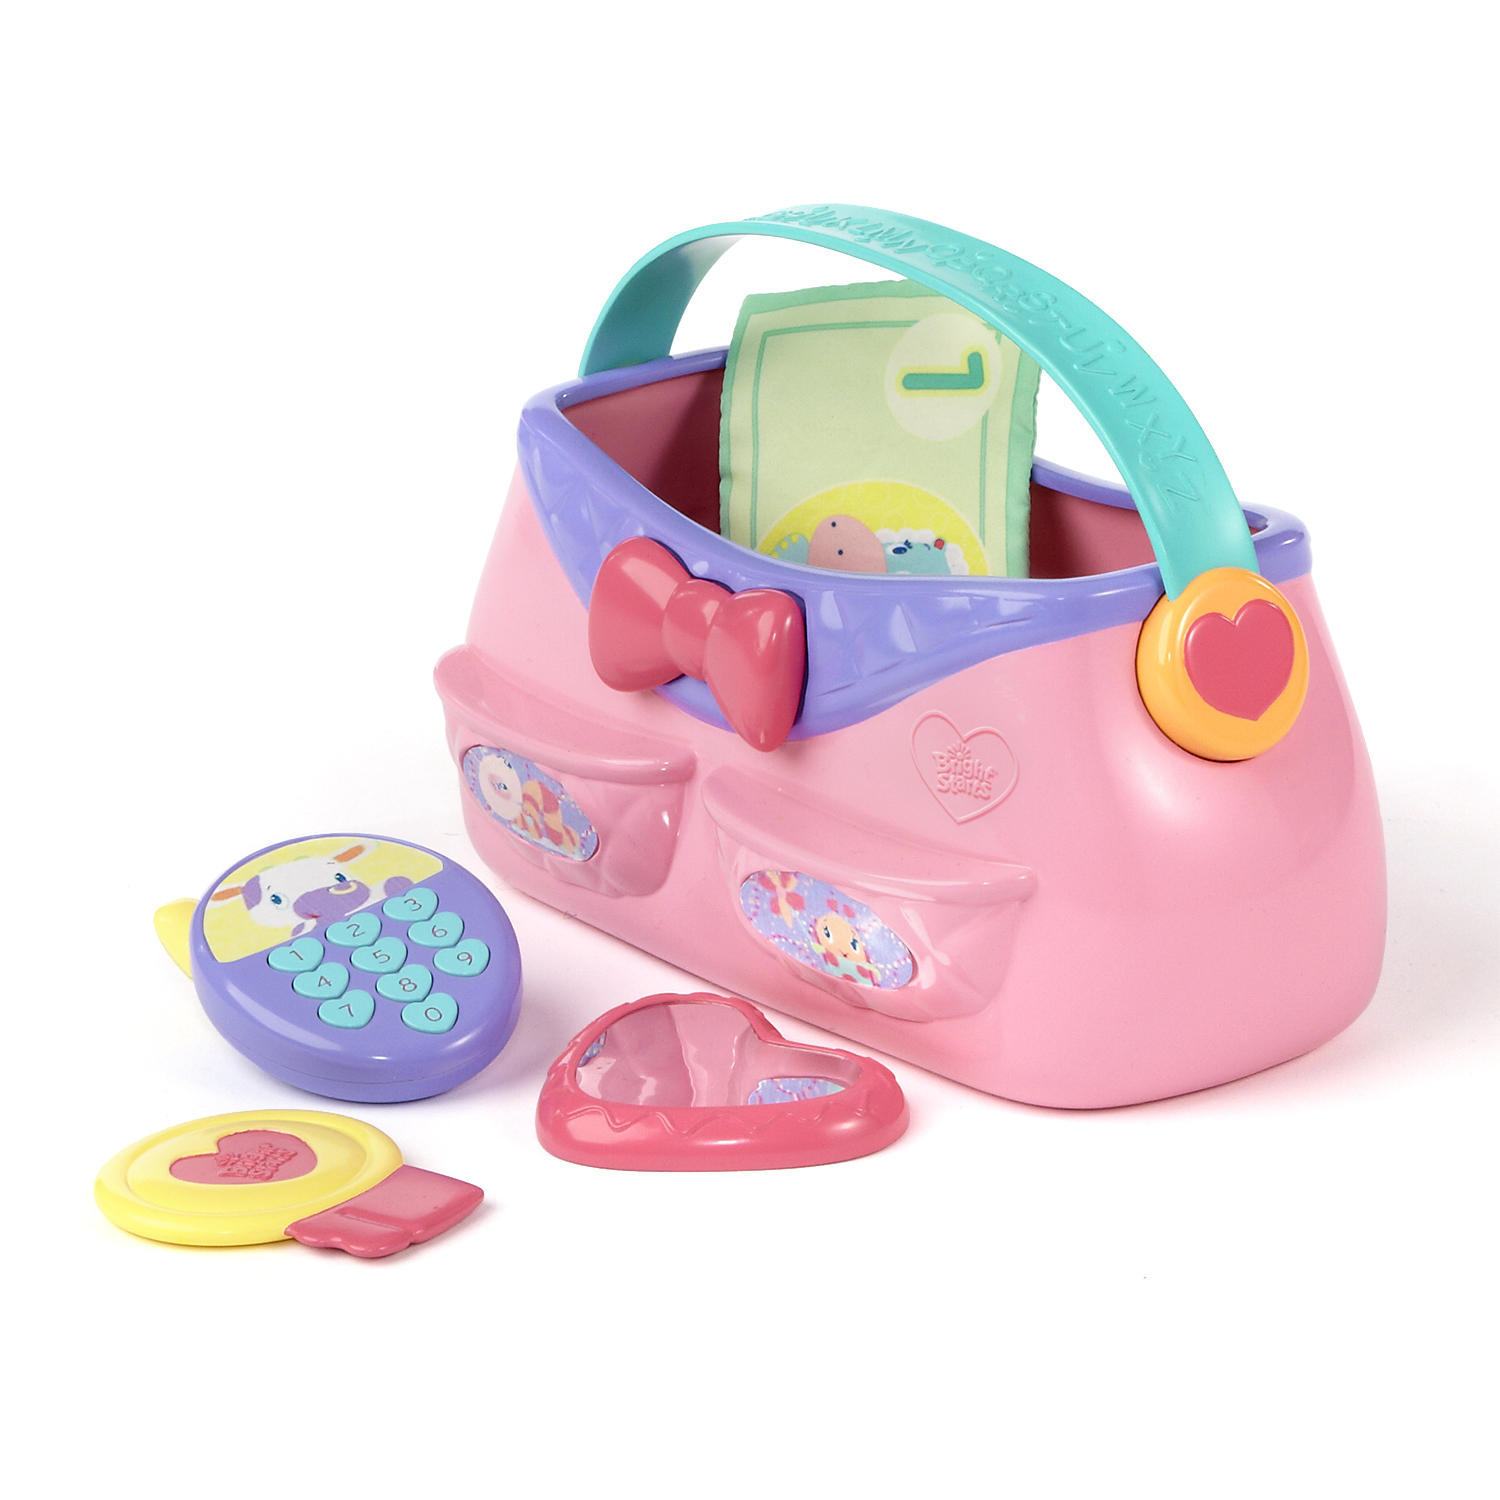 Bright Starts Put & Take Purse Toy